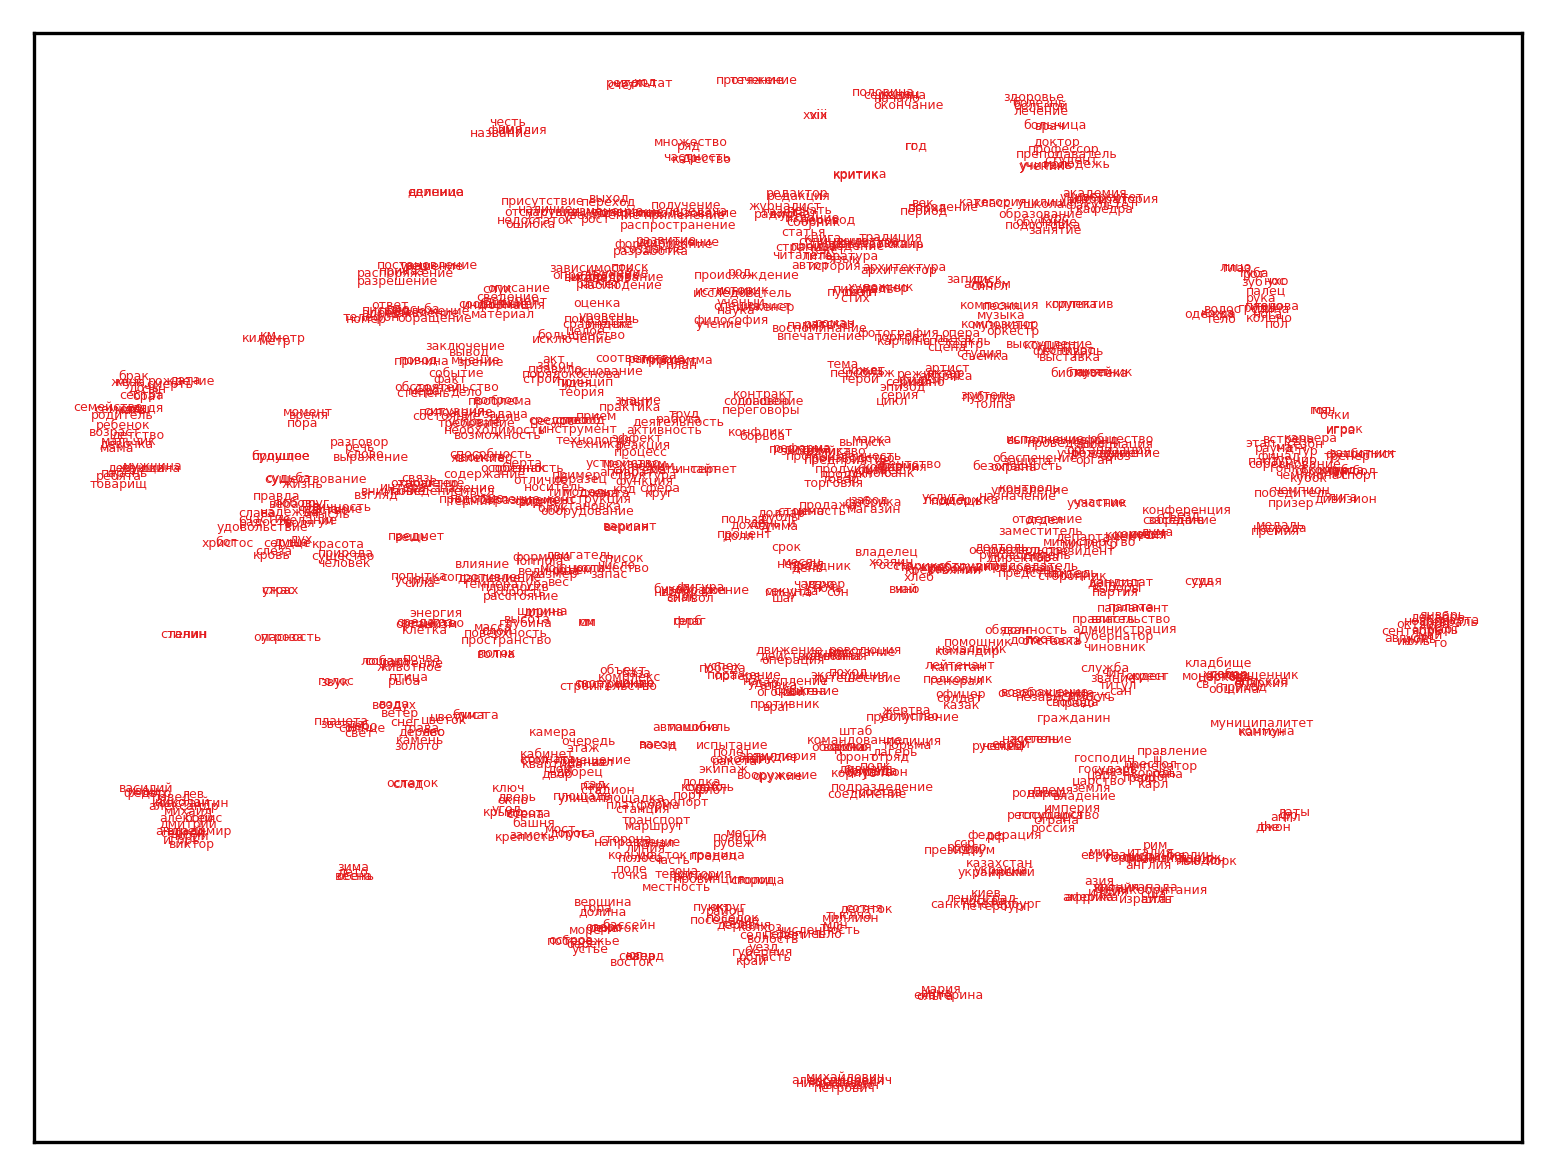 Plot for noun relations; click for full-size image